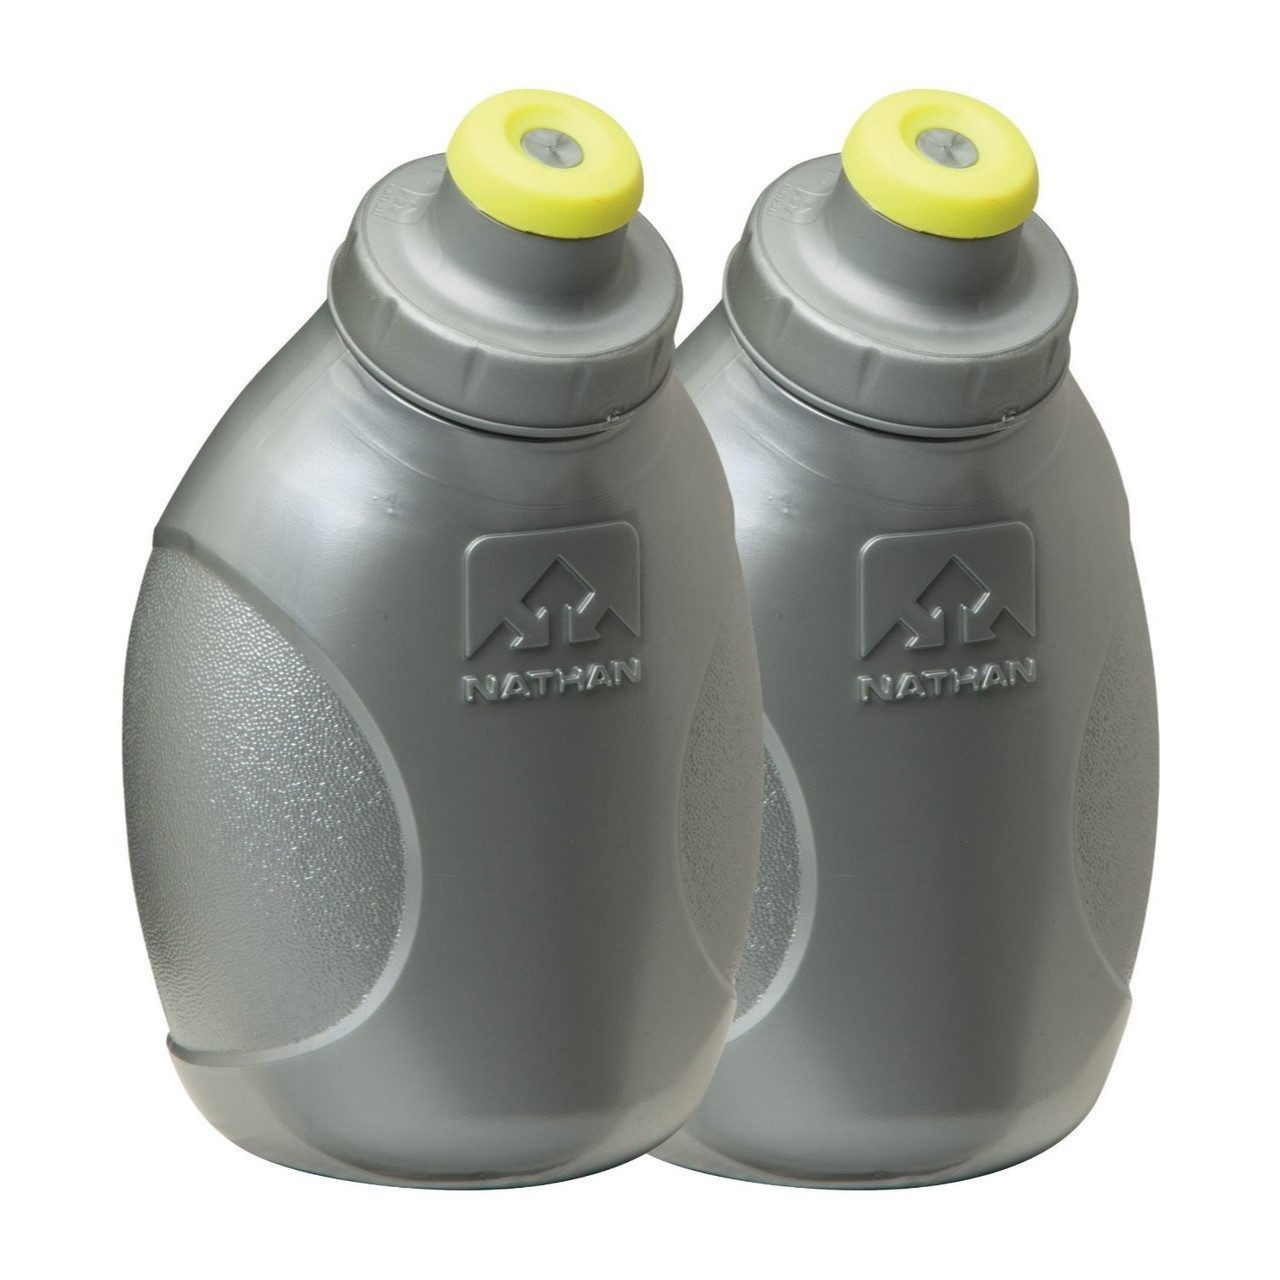 Nathan 10oz. Replacement Push Pull Flask - 2-Pack - 2019 price